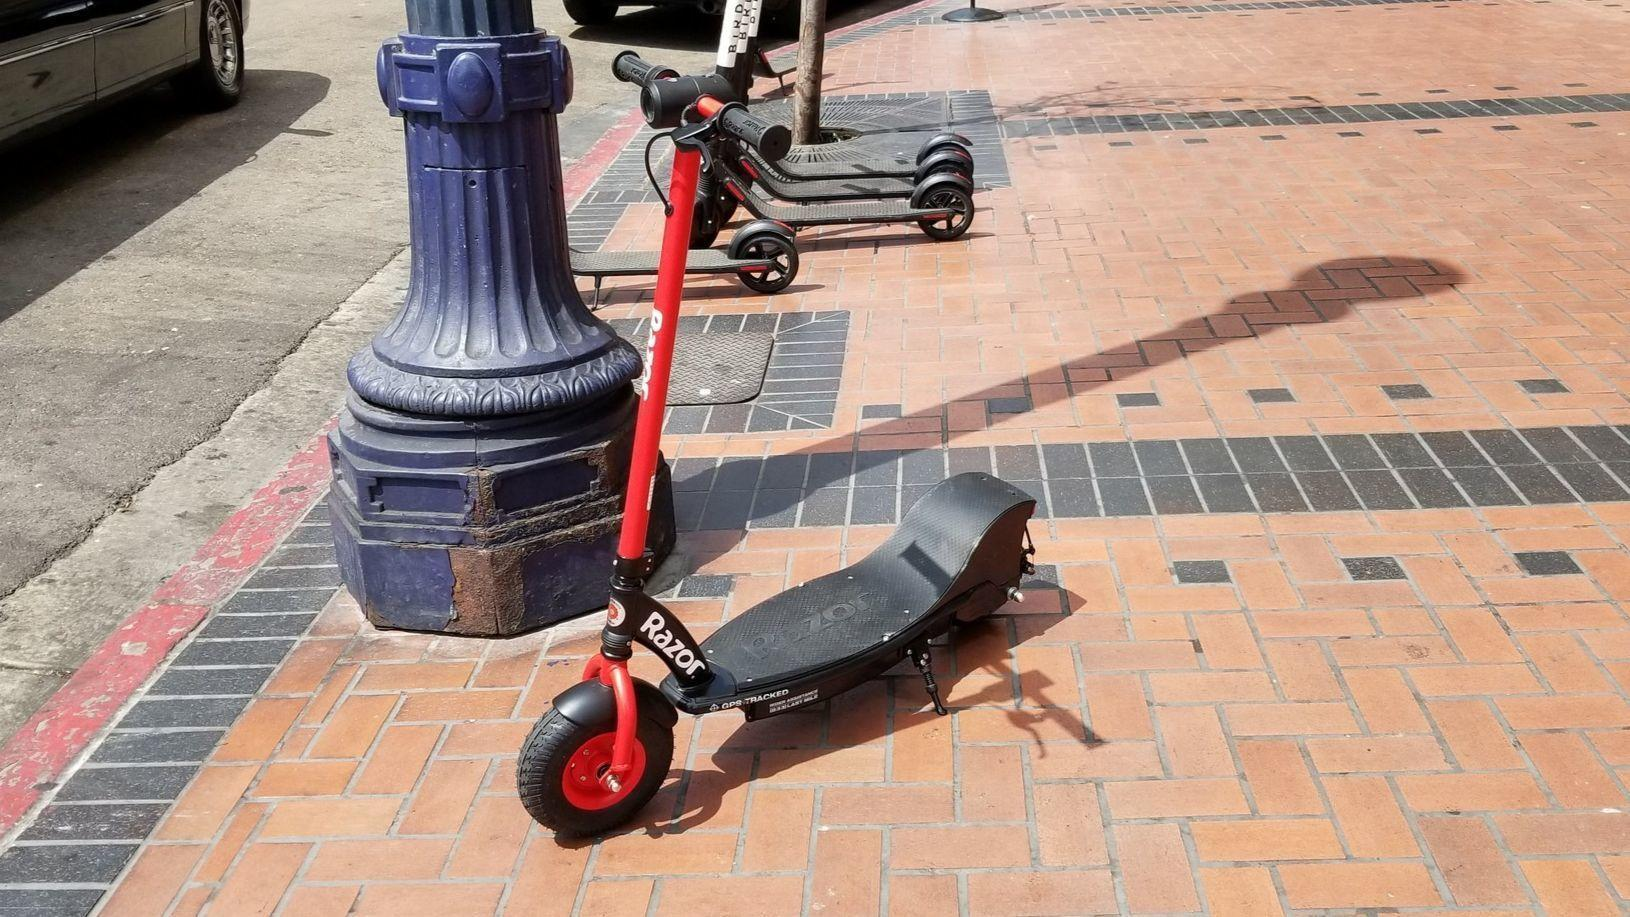 Dockless Razor Scooter Rolls Into San Diego The San Diego Union